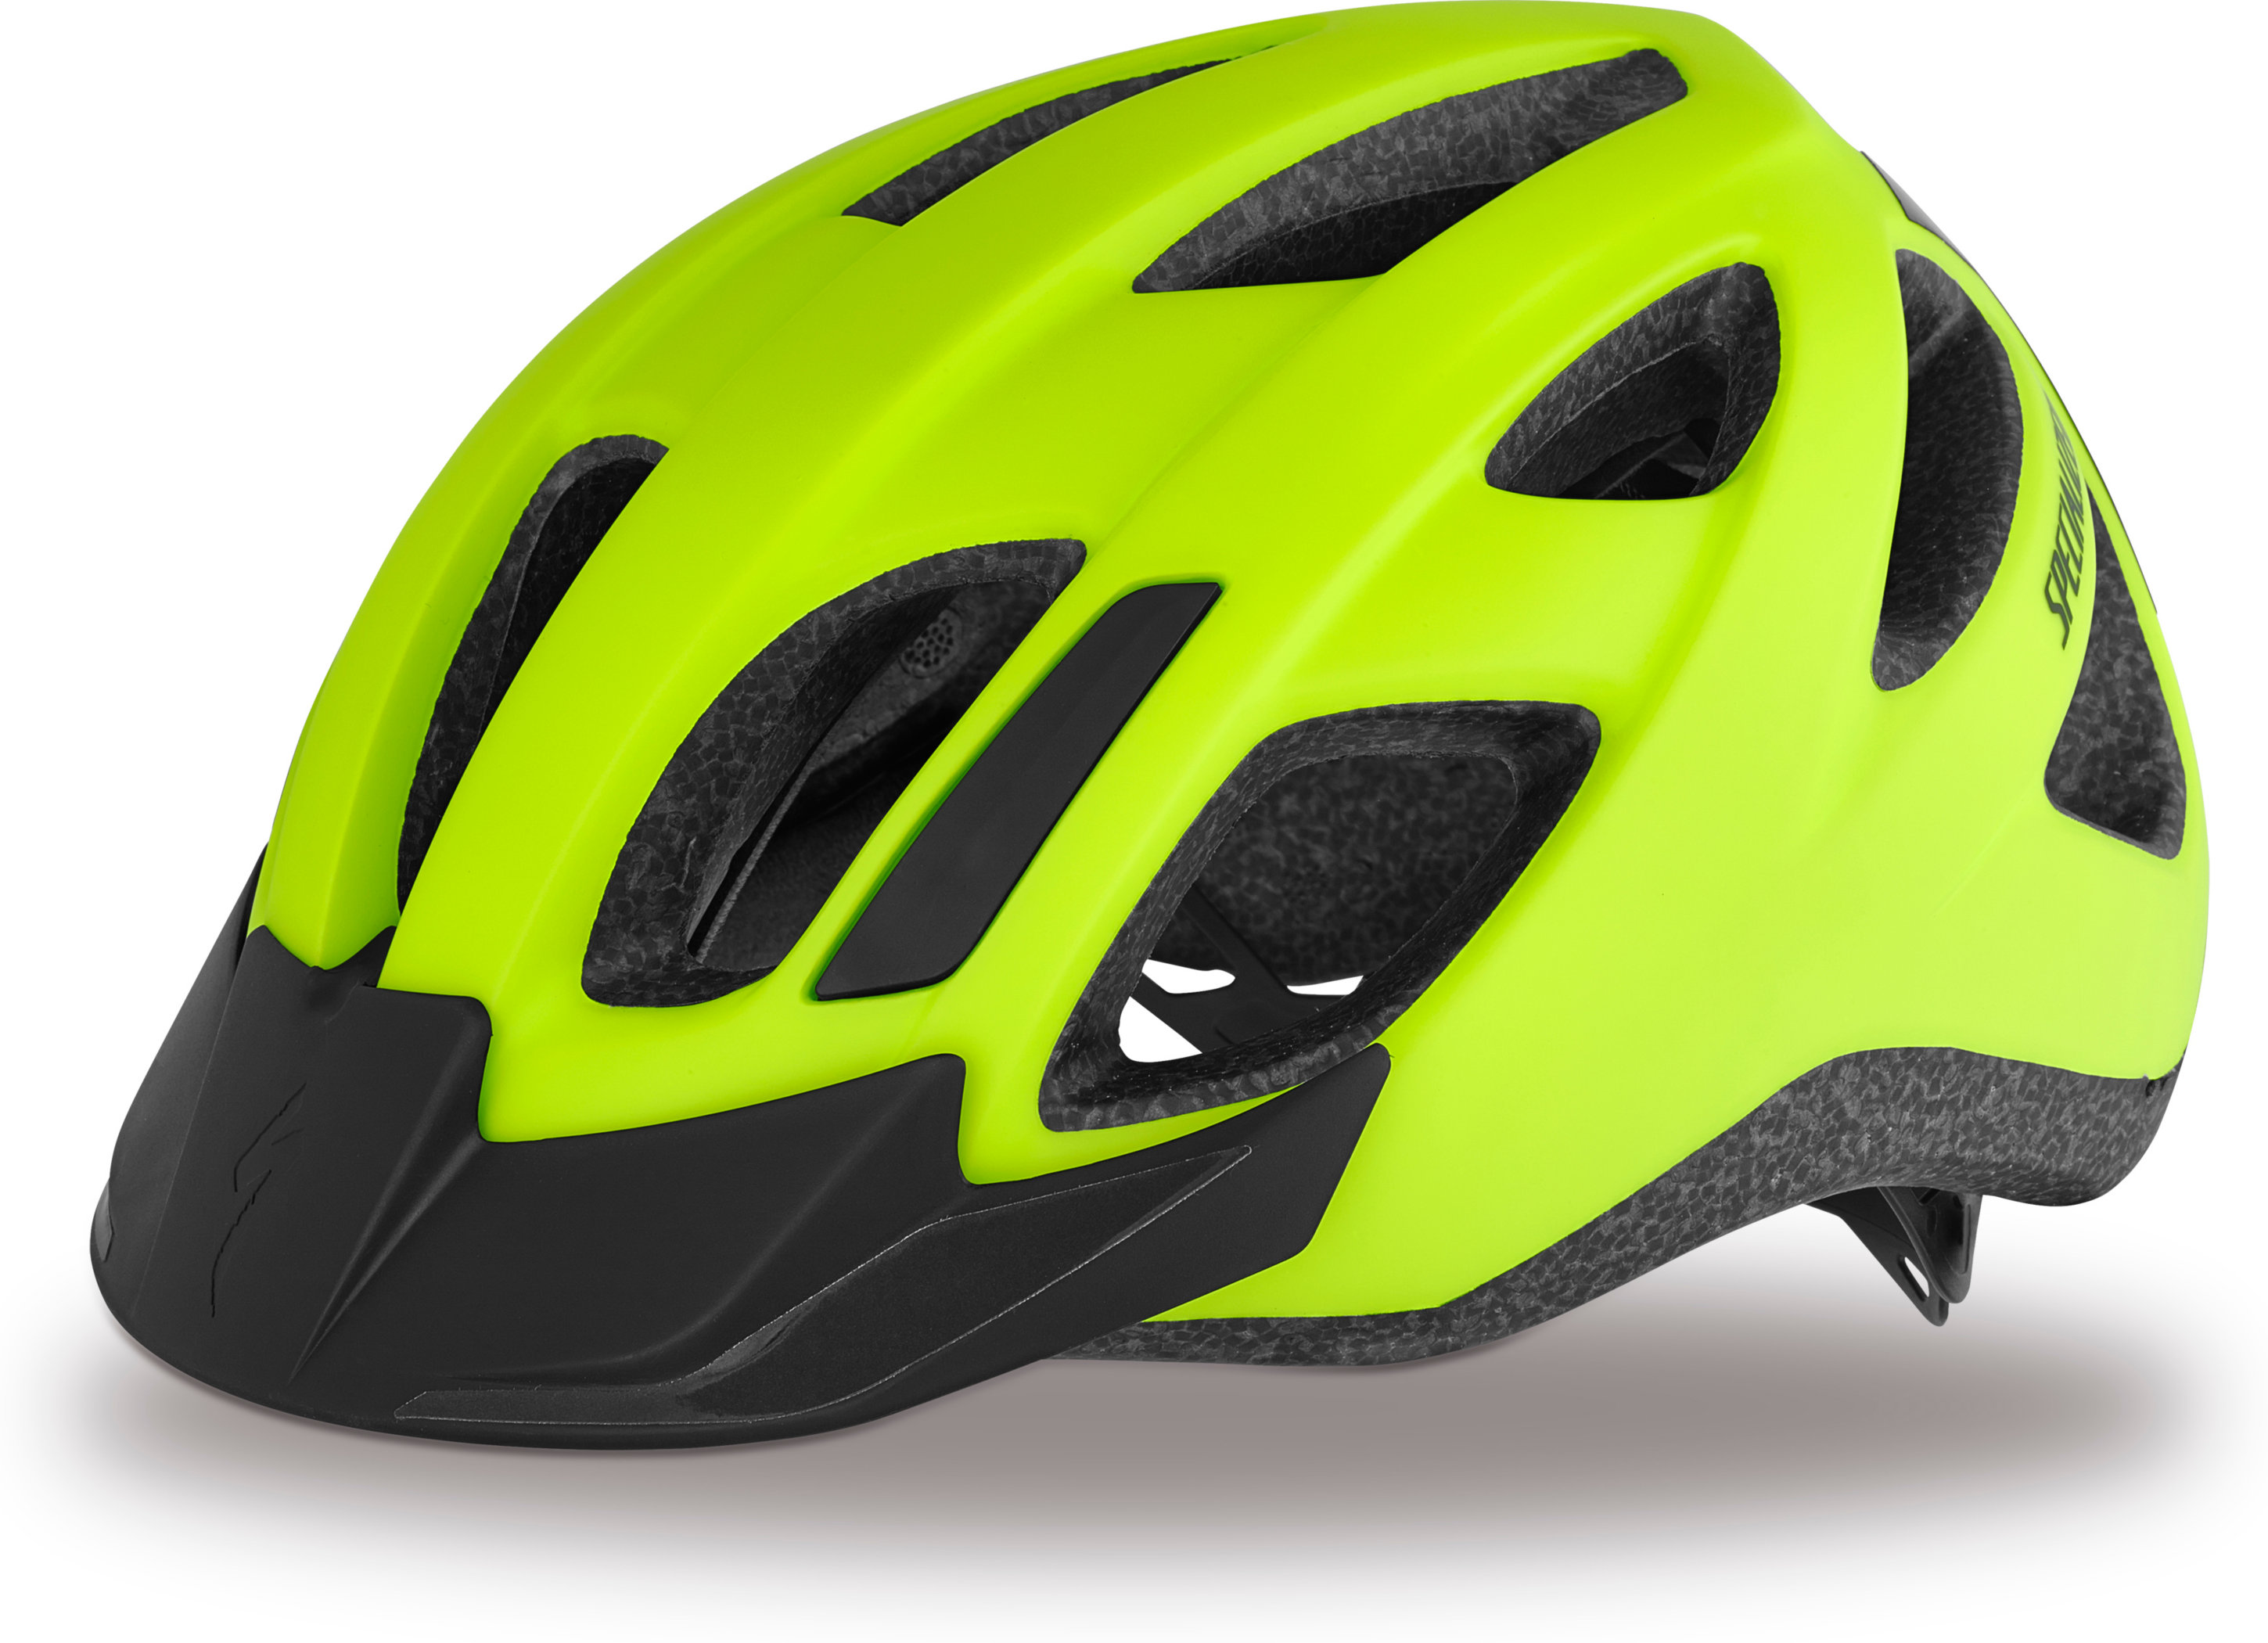 Specialized Centro LED Safety Ion ADLT - Alpha Bikes